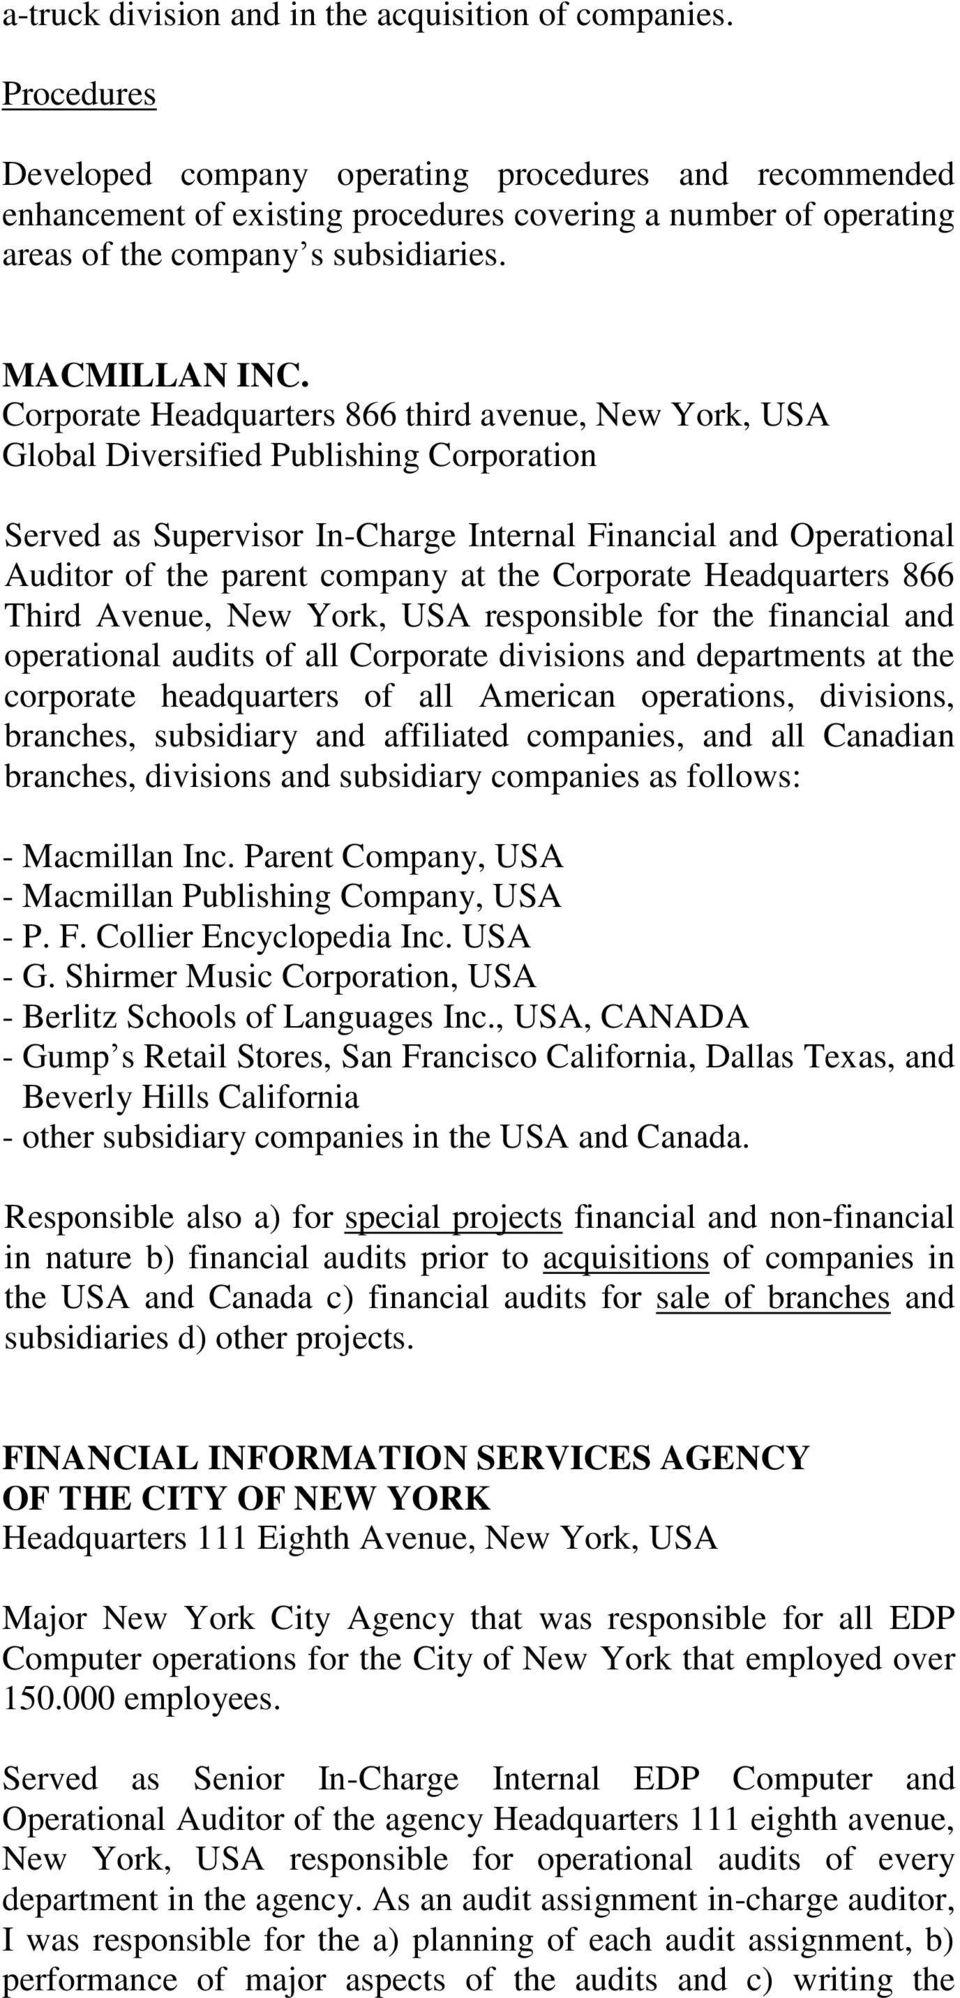 Corporate Headquarters 866 third avenue, New York, USA Global Diversified Publishing Corporation Served as Supervisor In-Charge Internal Financial and Operational Auditor of the parent company at the